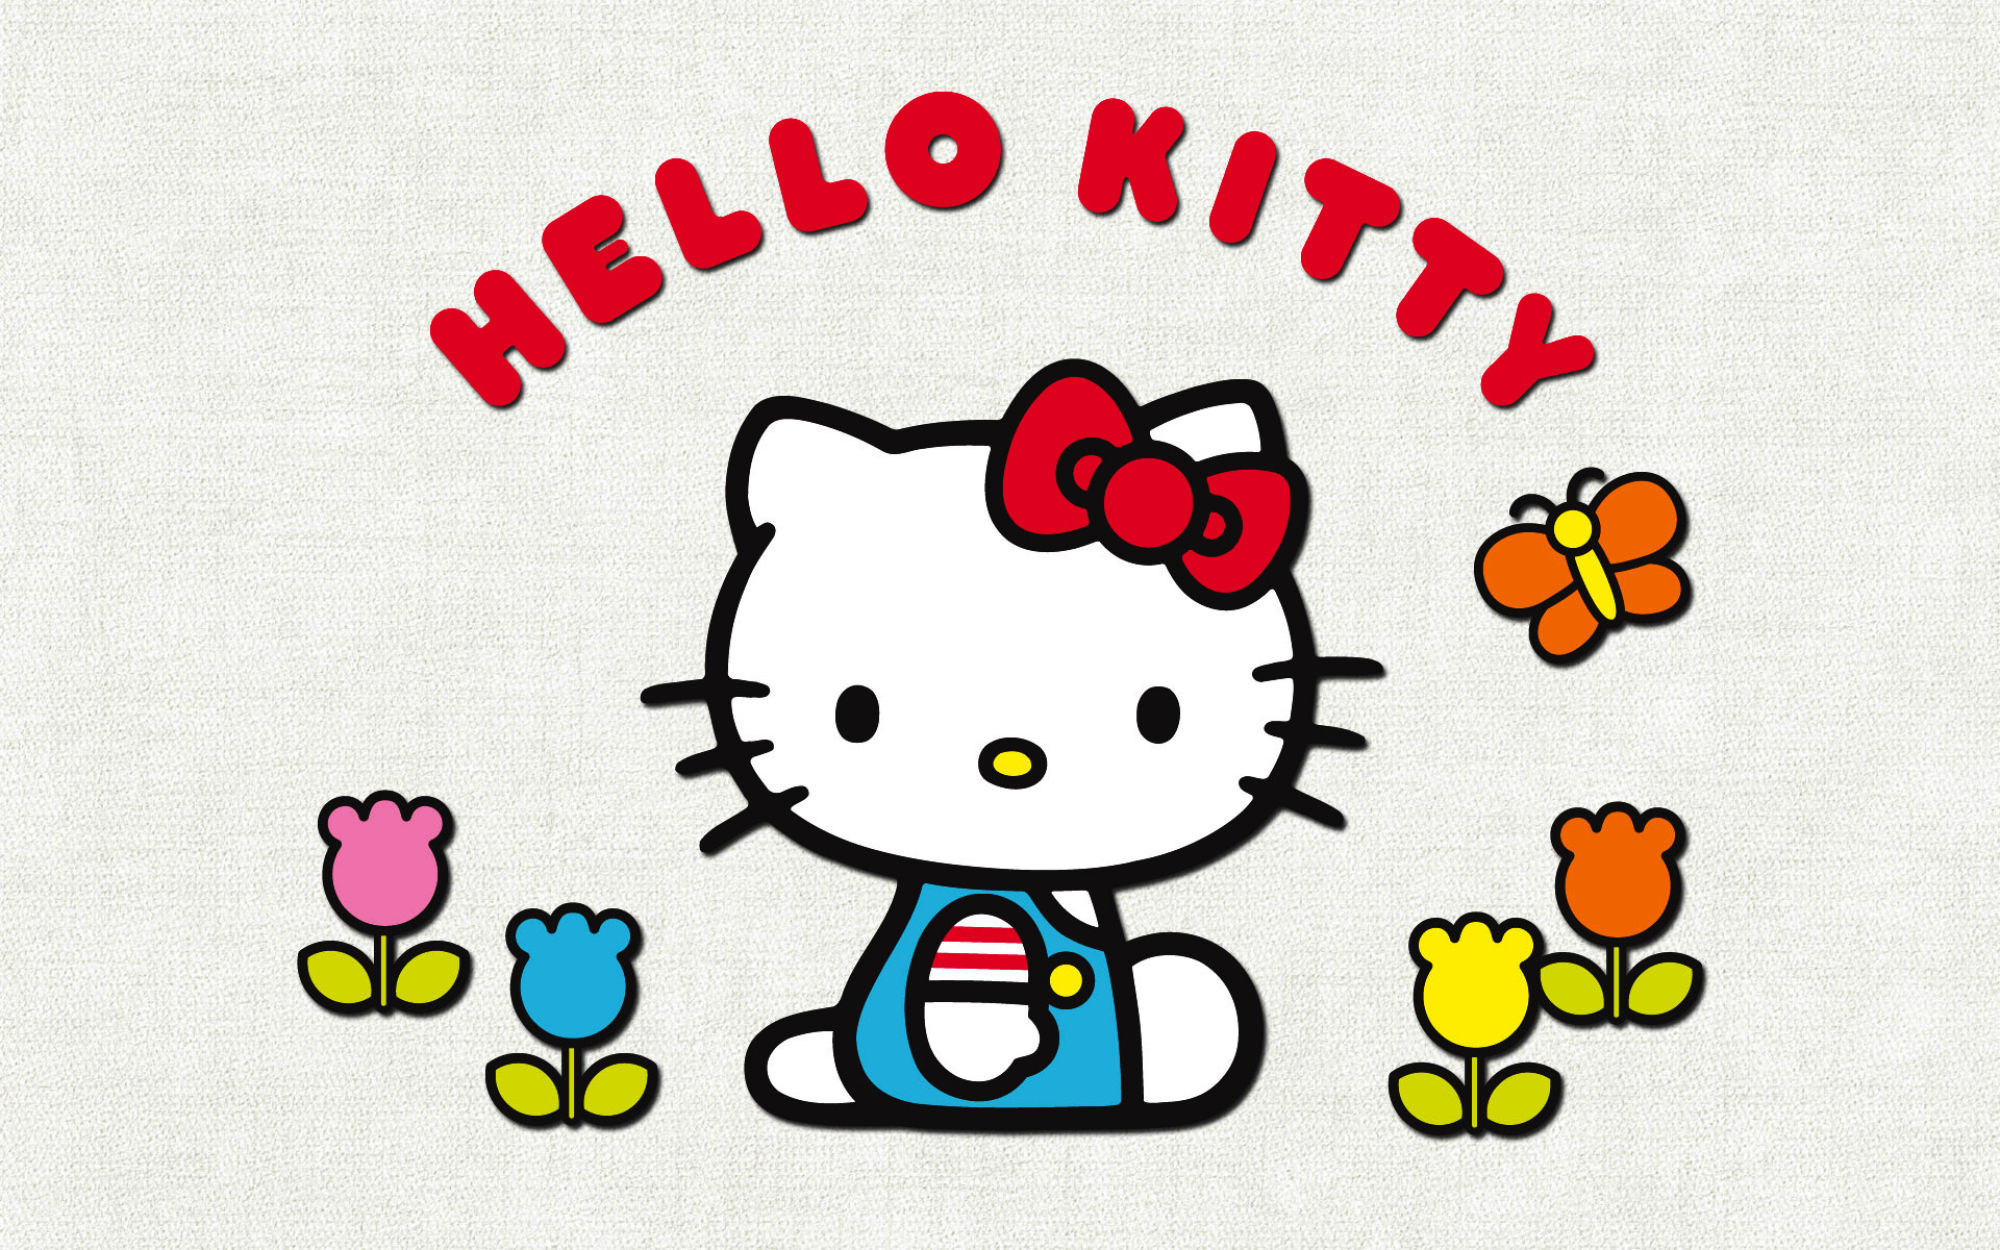 Fondos-HD-de-hello-kitty-Fondosdepantalla.top (8)